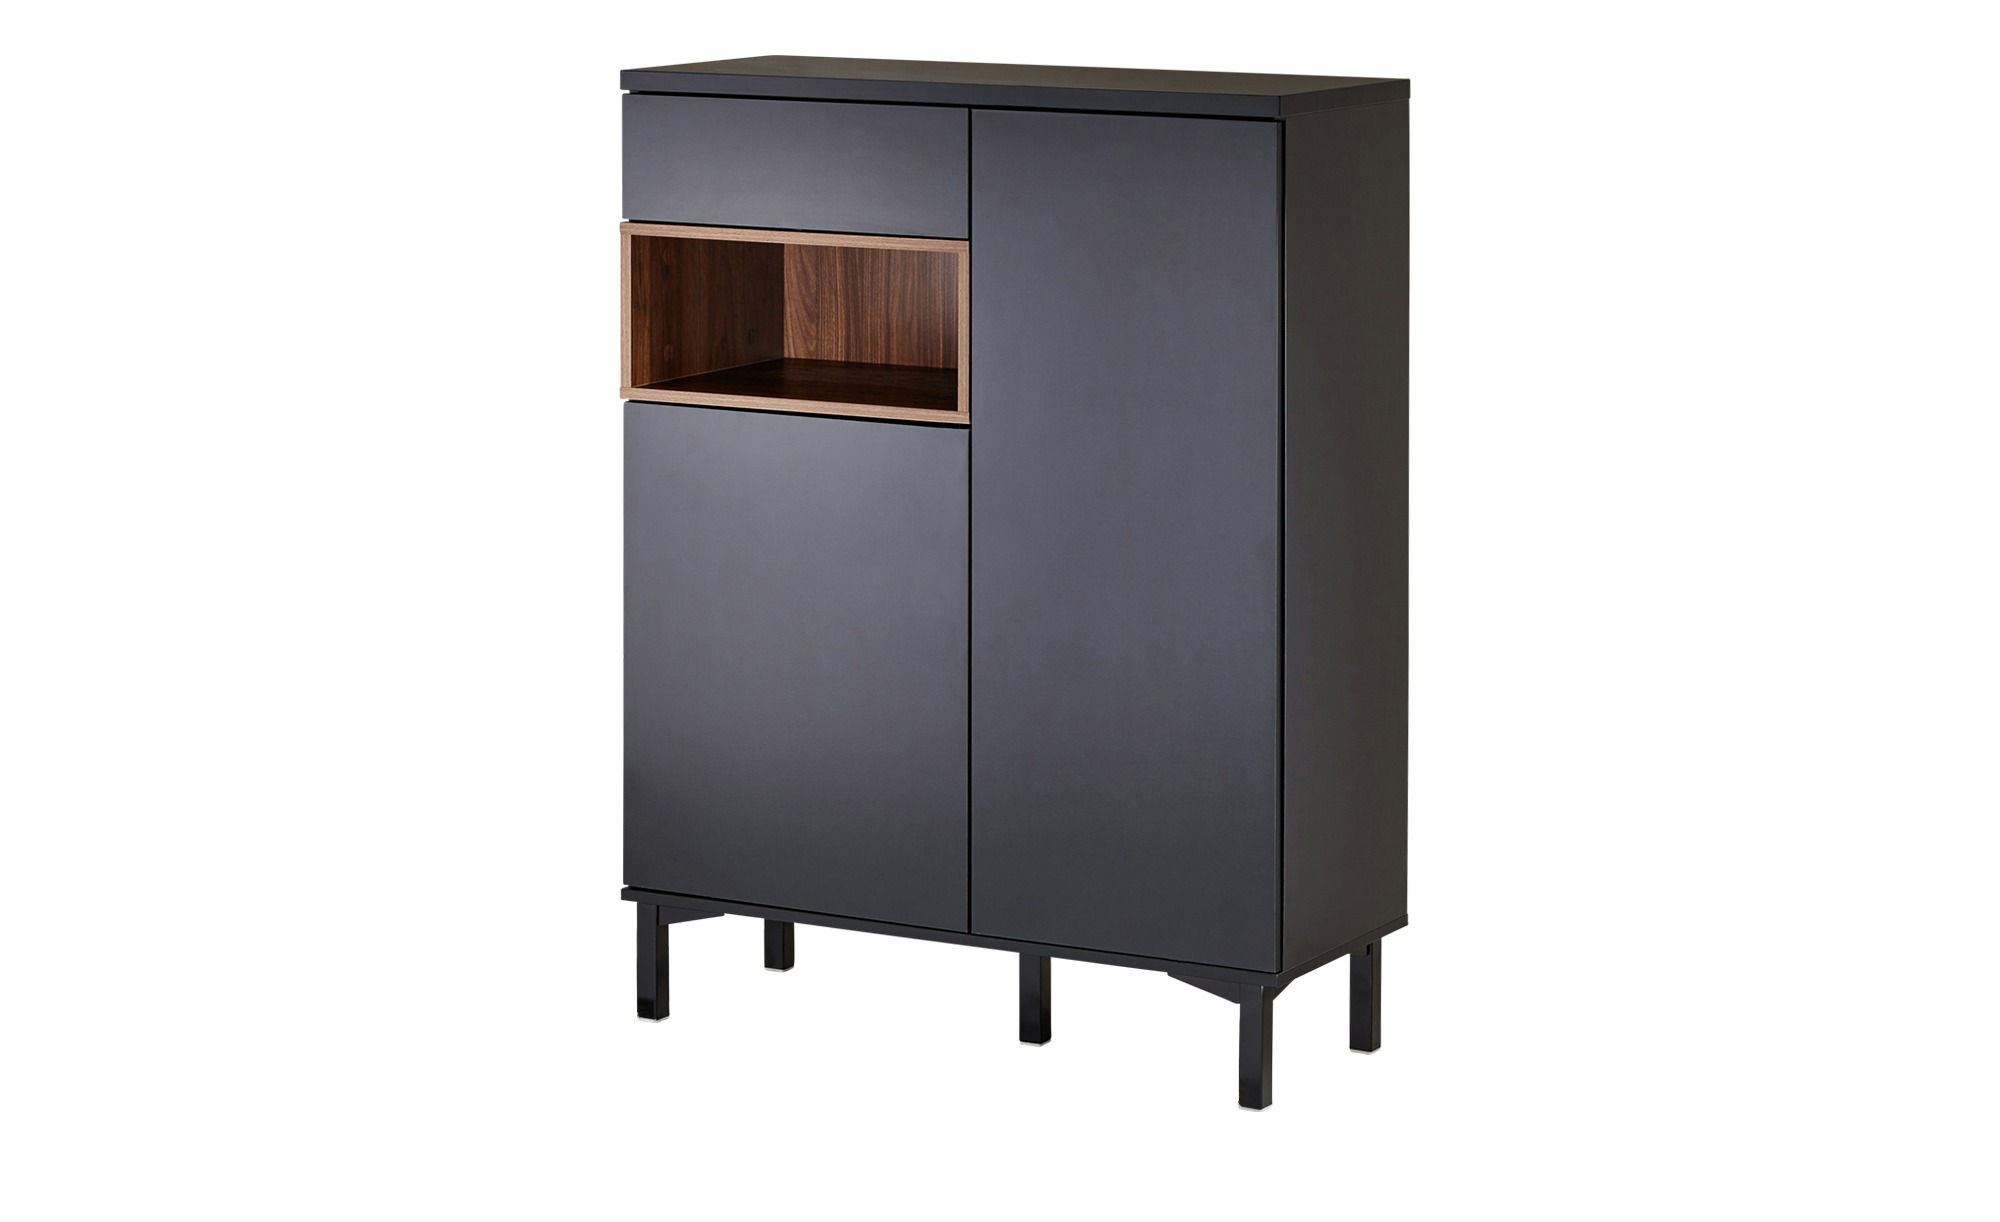 roomers highboard case breite 90 cm h he 120 cm schwarz online kaufen bei woonio. Black Bedroom Furniture Sets. Home Design Ideas